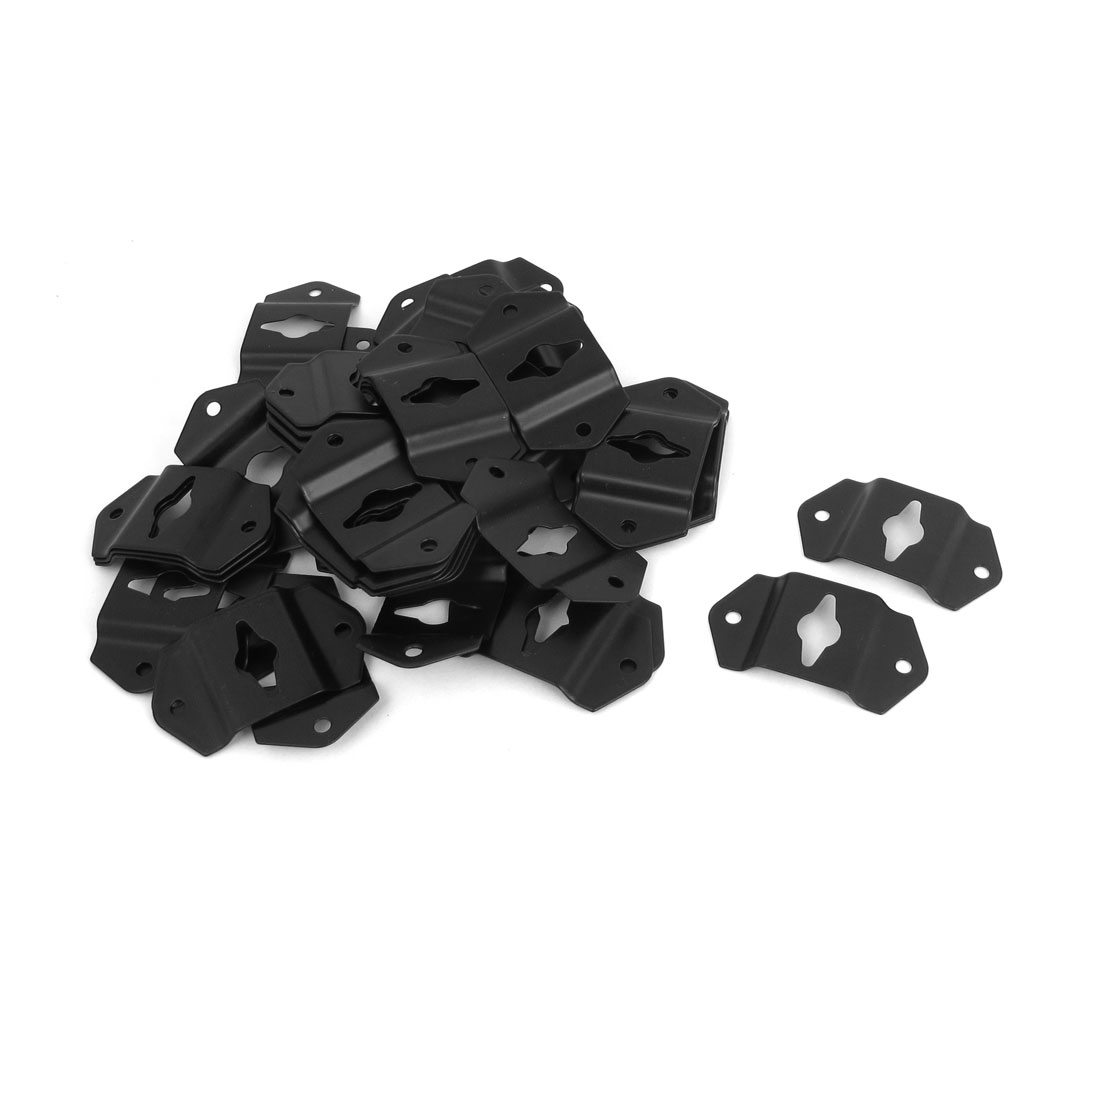 DIY Audio Sound Box Speaker Wall Mount Iron Hook Hanger Plate Black 50pcs